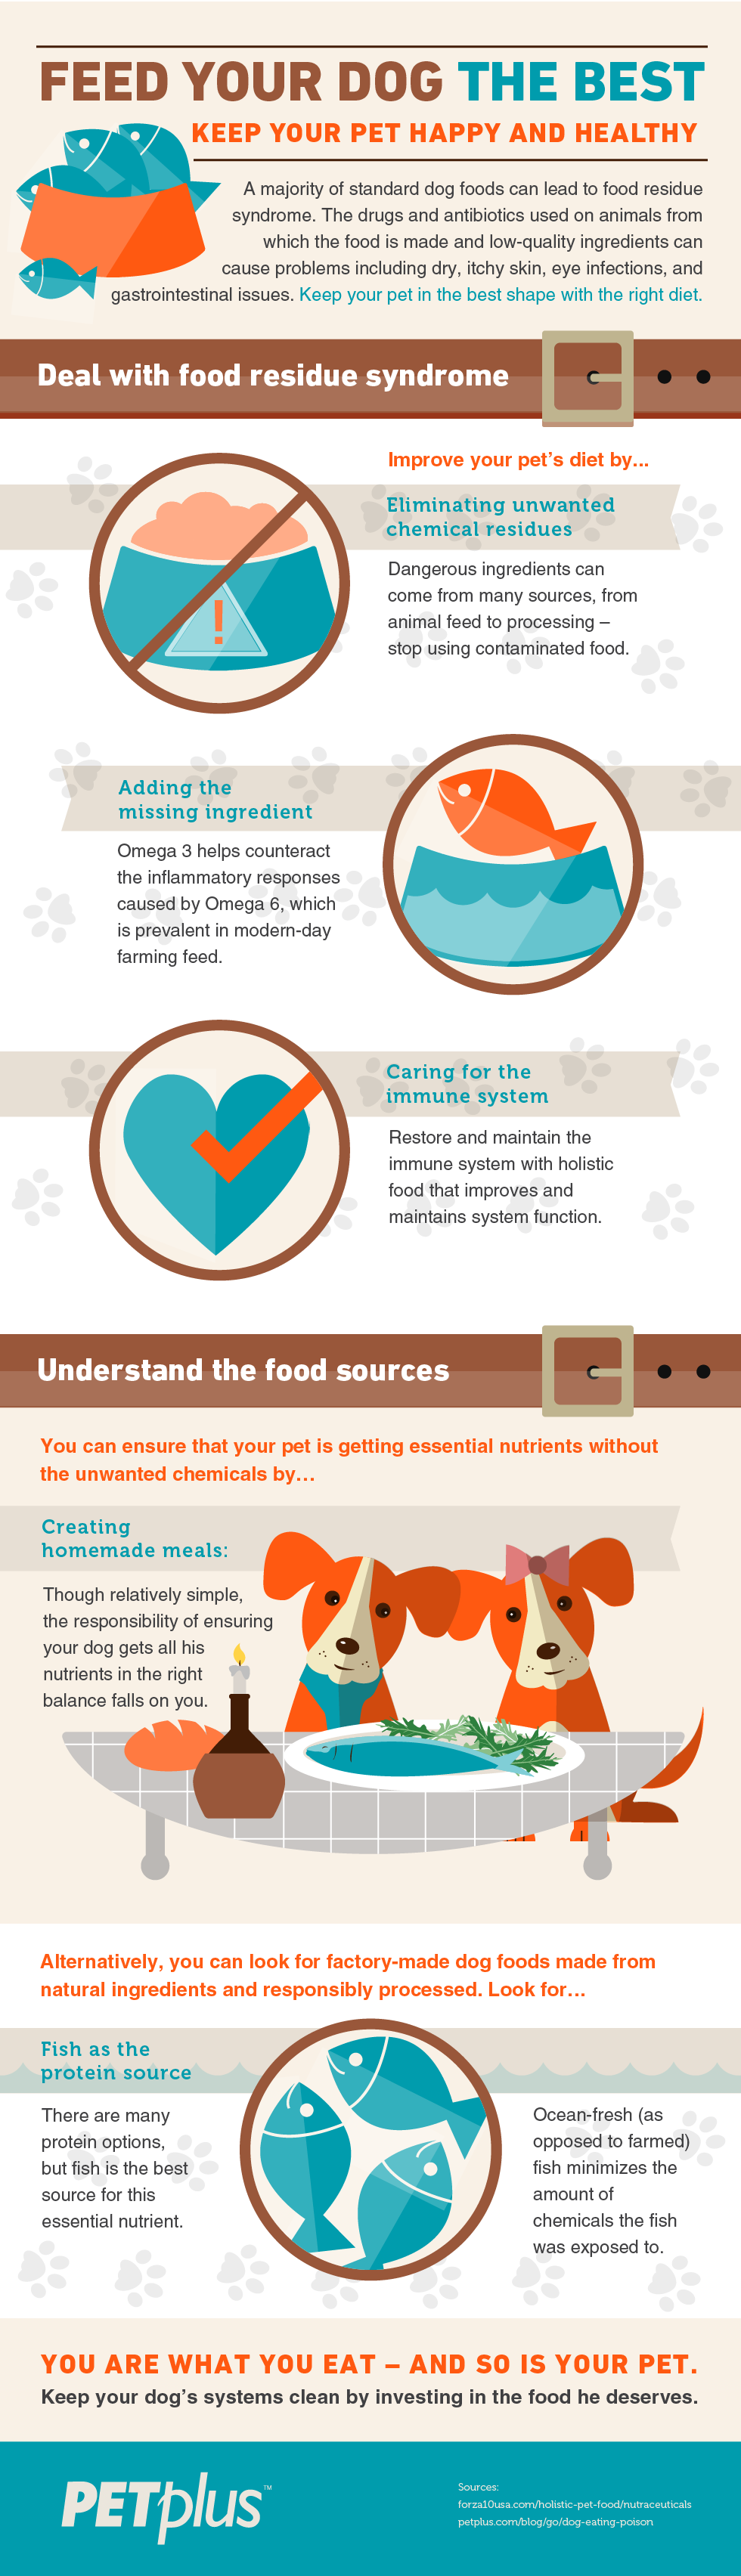 feed-your-dog-the-best-infographic